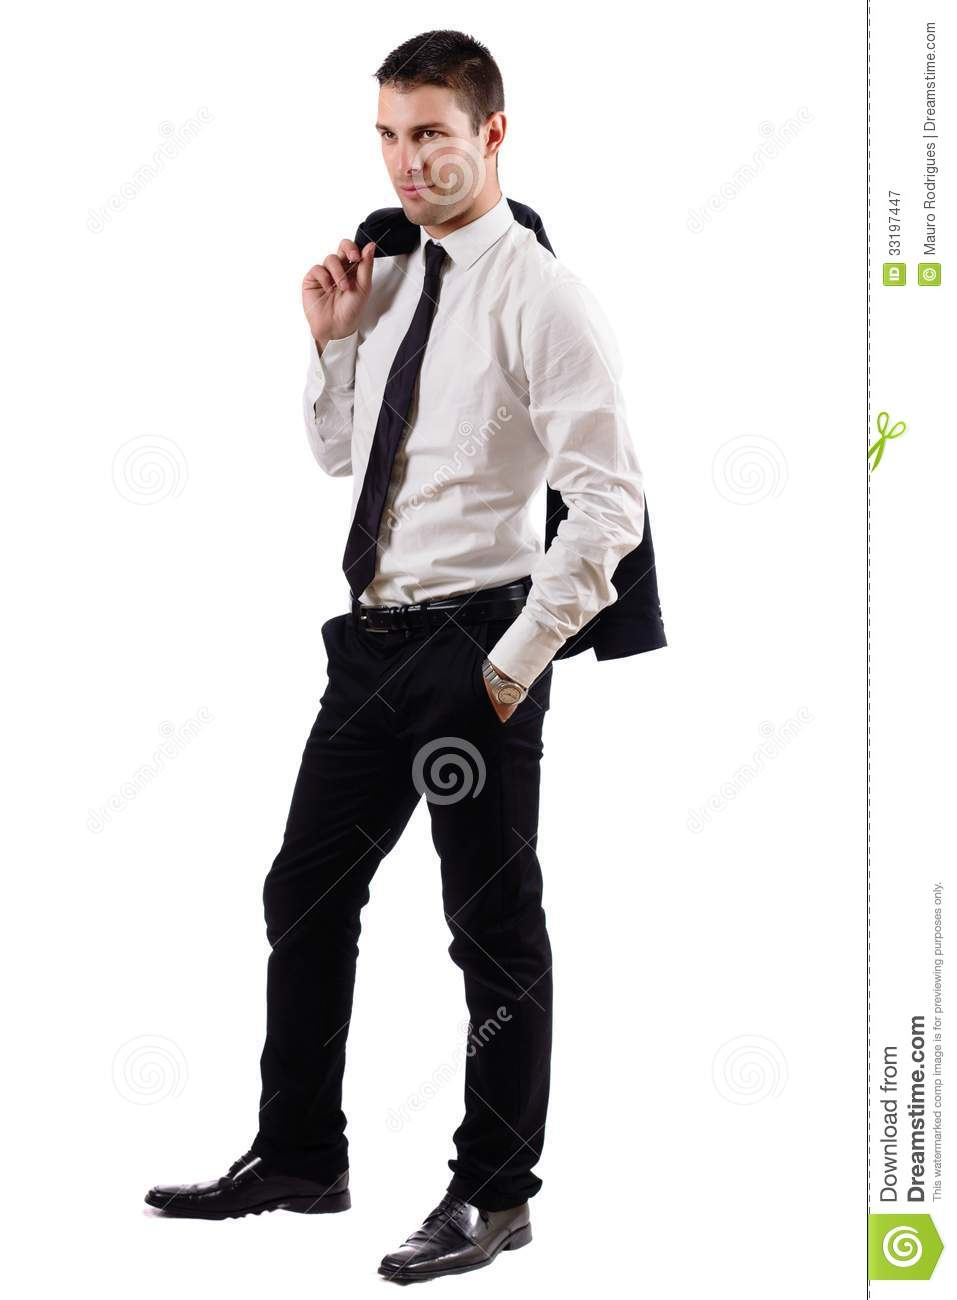 Young Business Man On A Relaxed Pose Stock Image - Image ...